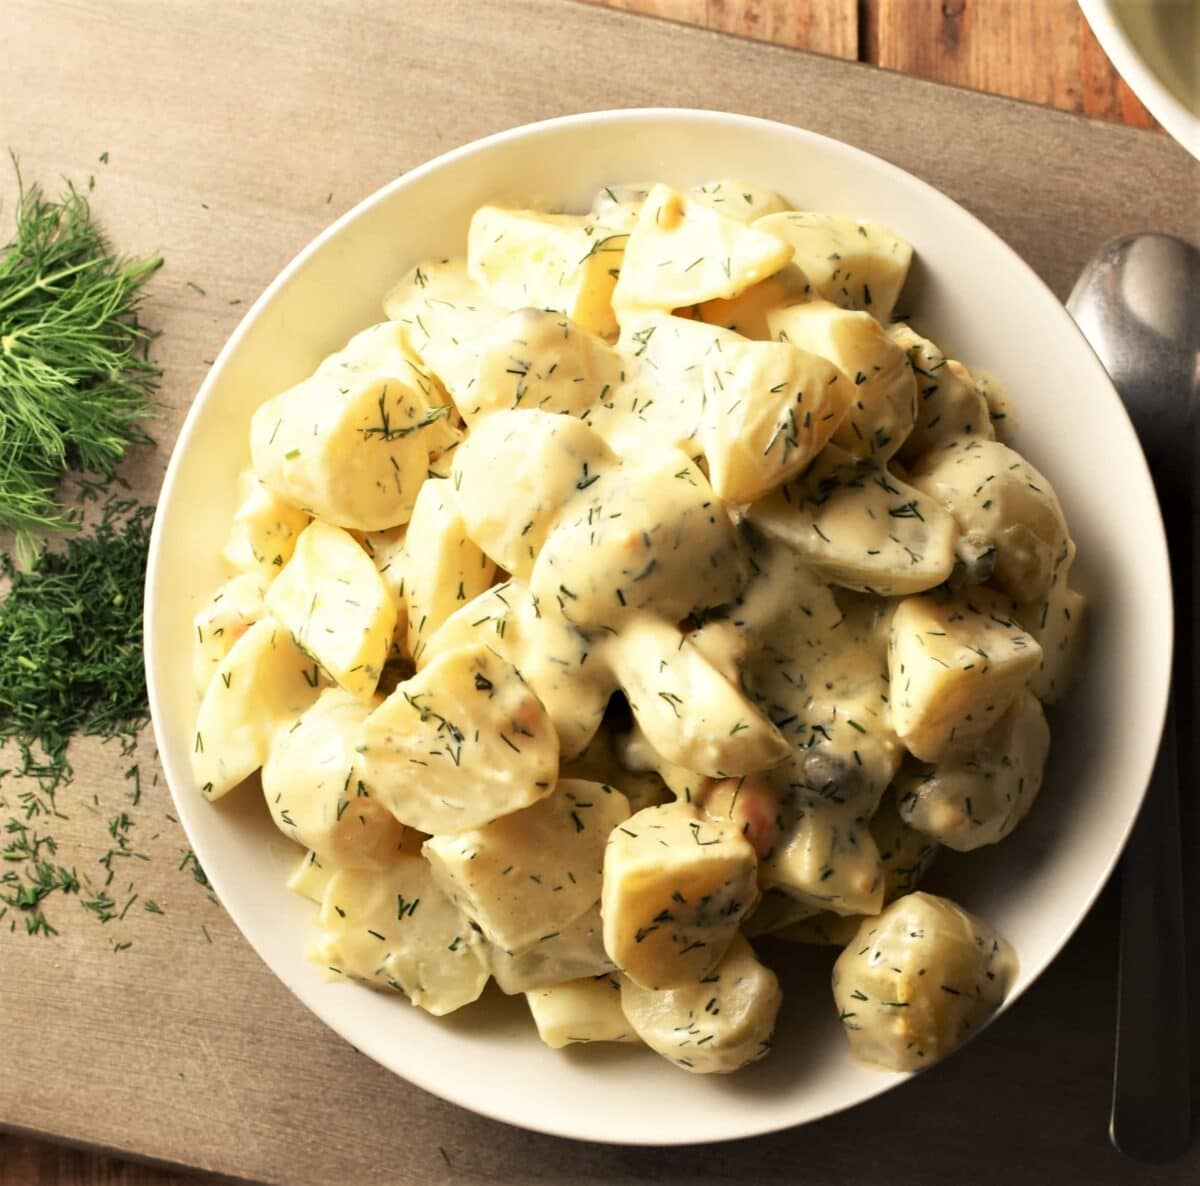 Creamy potato dill salad in white bowl with dill to the left.